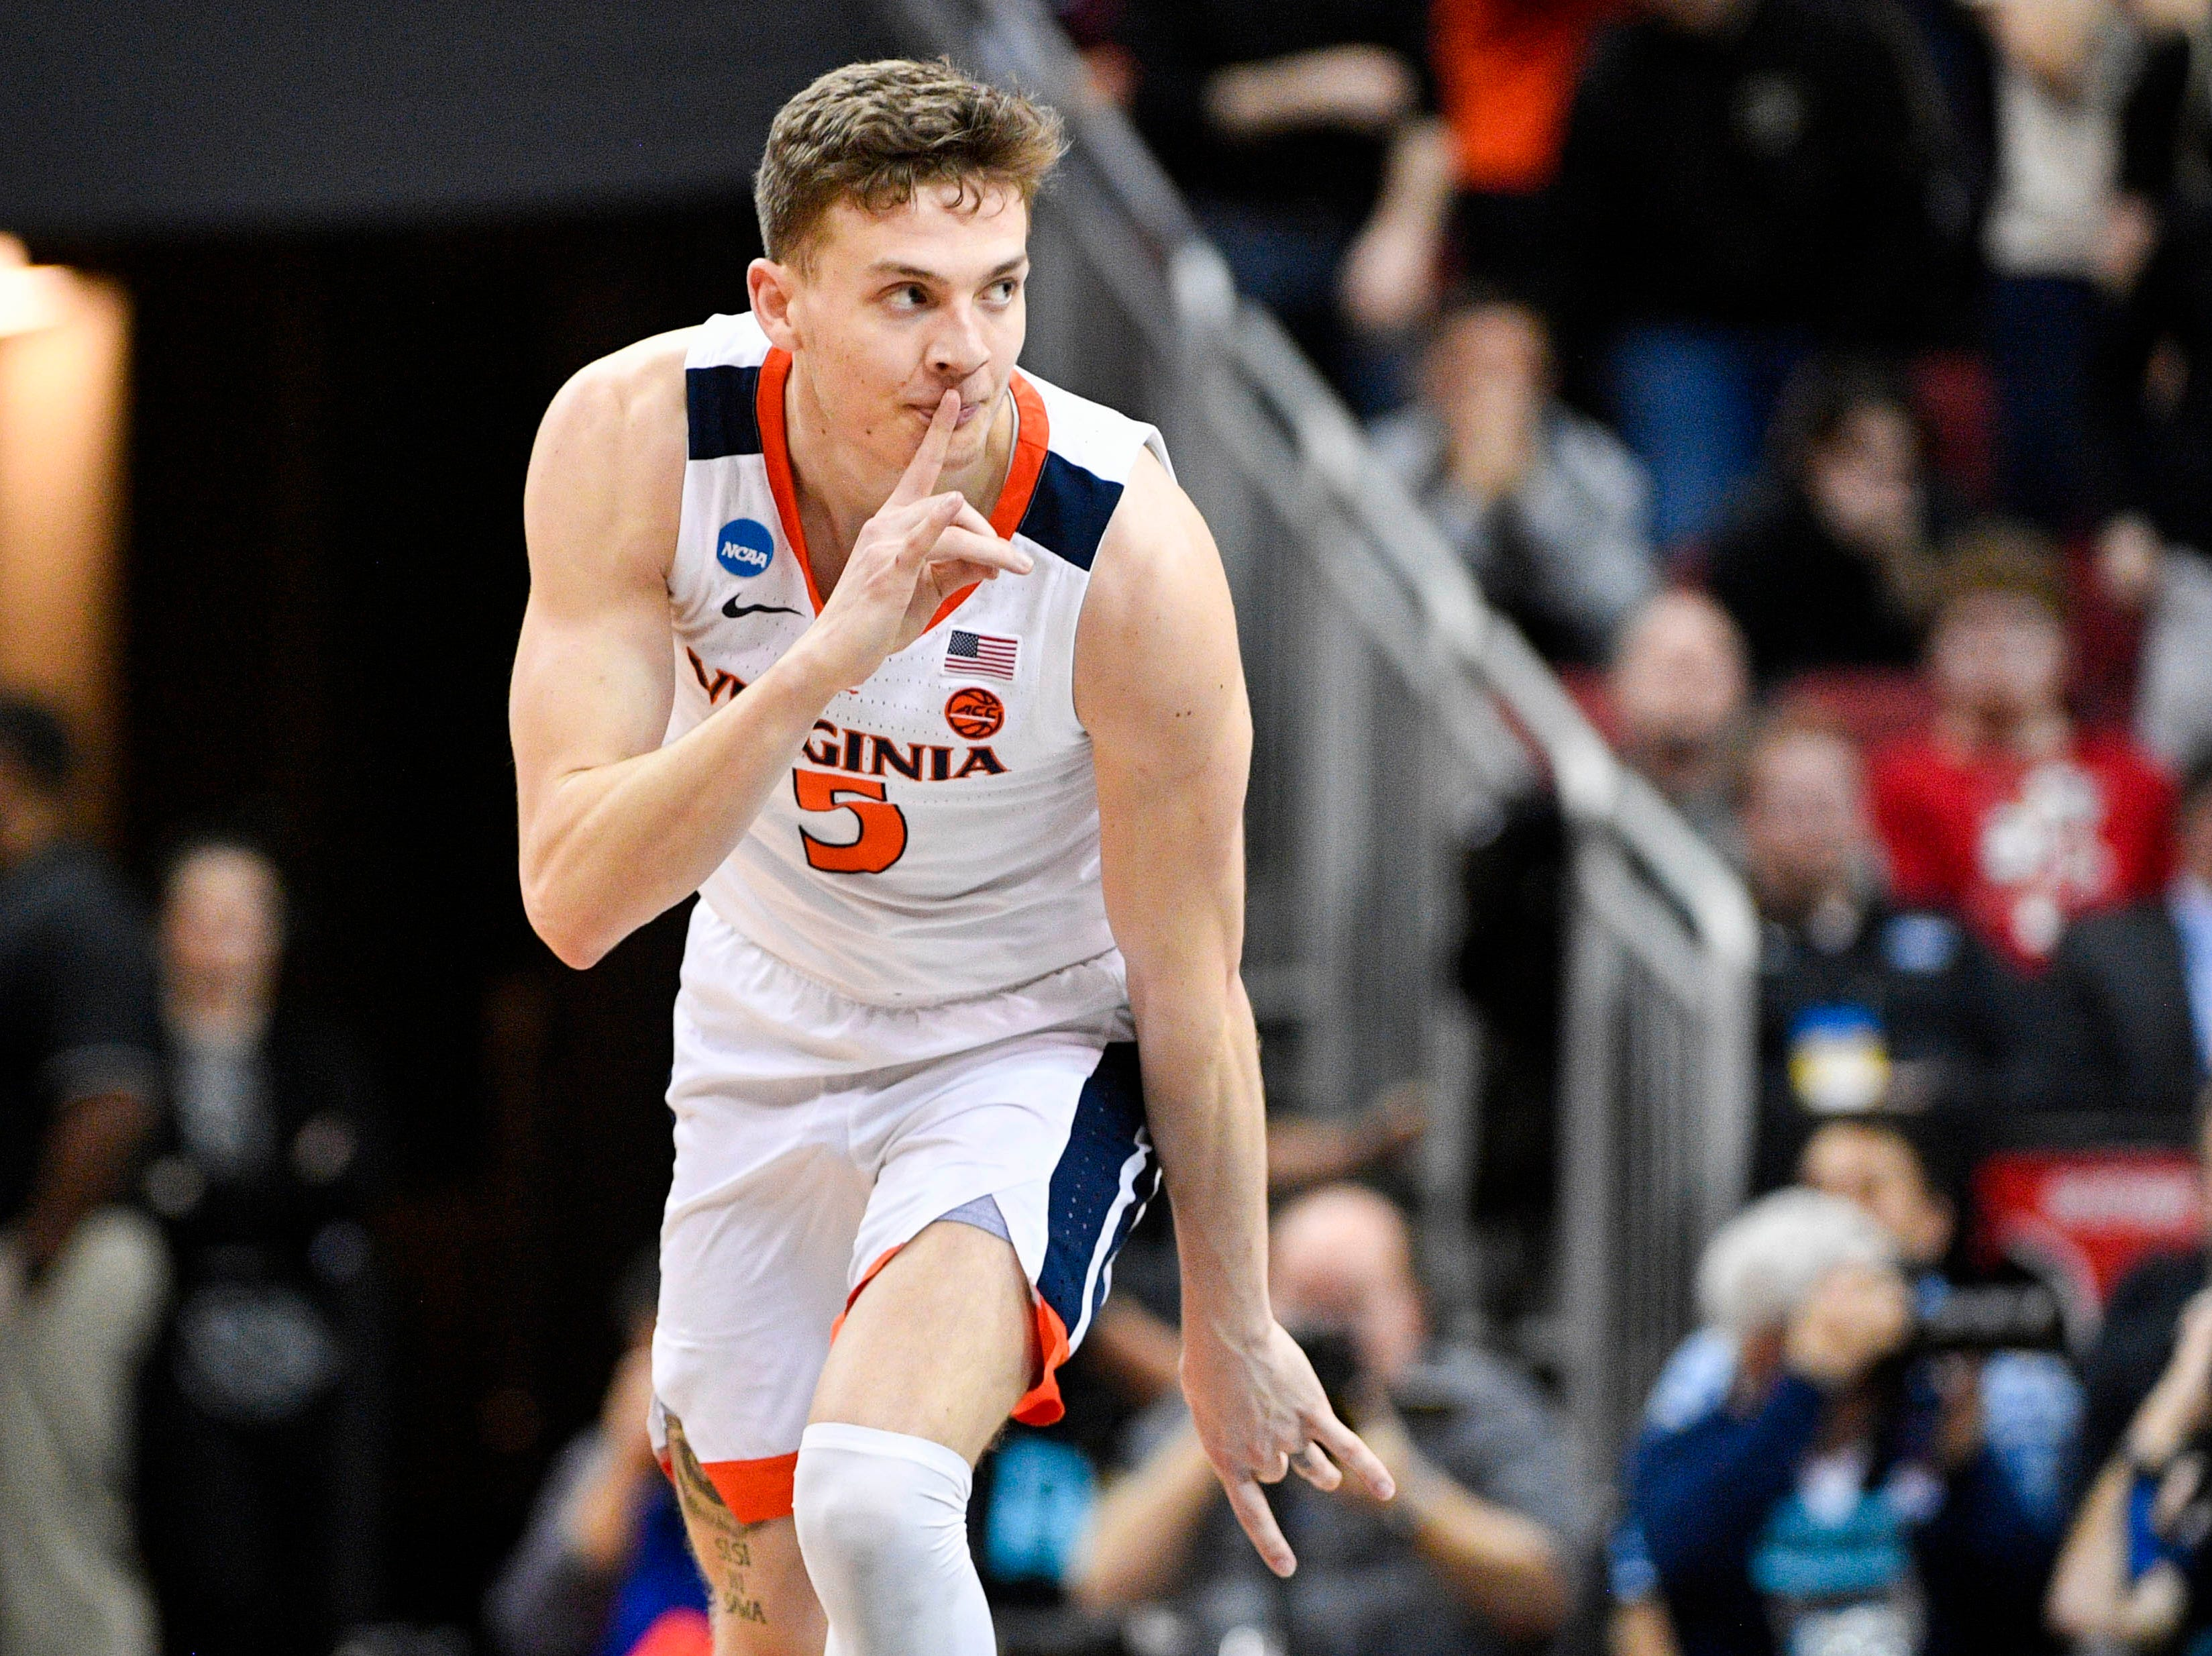 Mar 30, 2019; Louisville, KY, United States; Virginia Cavaliers guard Kyle Guy (5) reacts during the second half in the championship game against the Purdue Boilermakers of the south regional of the 2019 NCAA Tournament at KFC Yum Center. Mandatory Credit: Jamie Rhodes-USA TODAY Sports